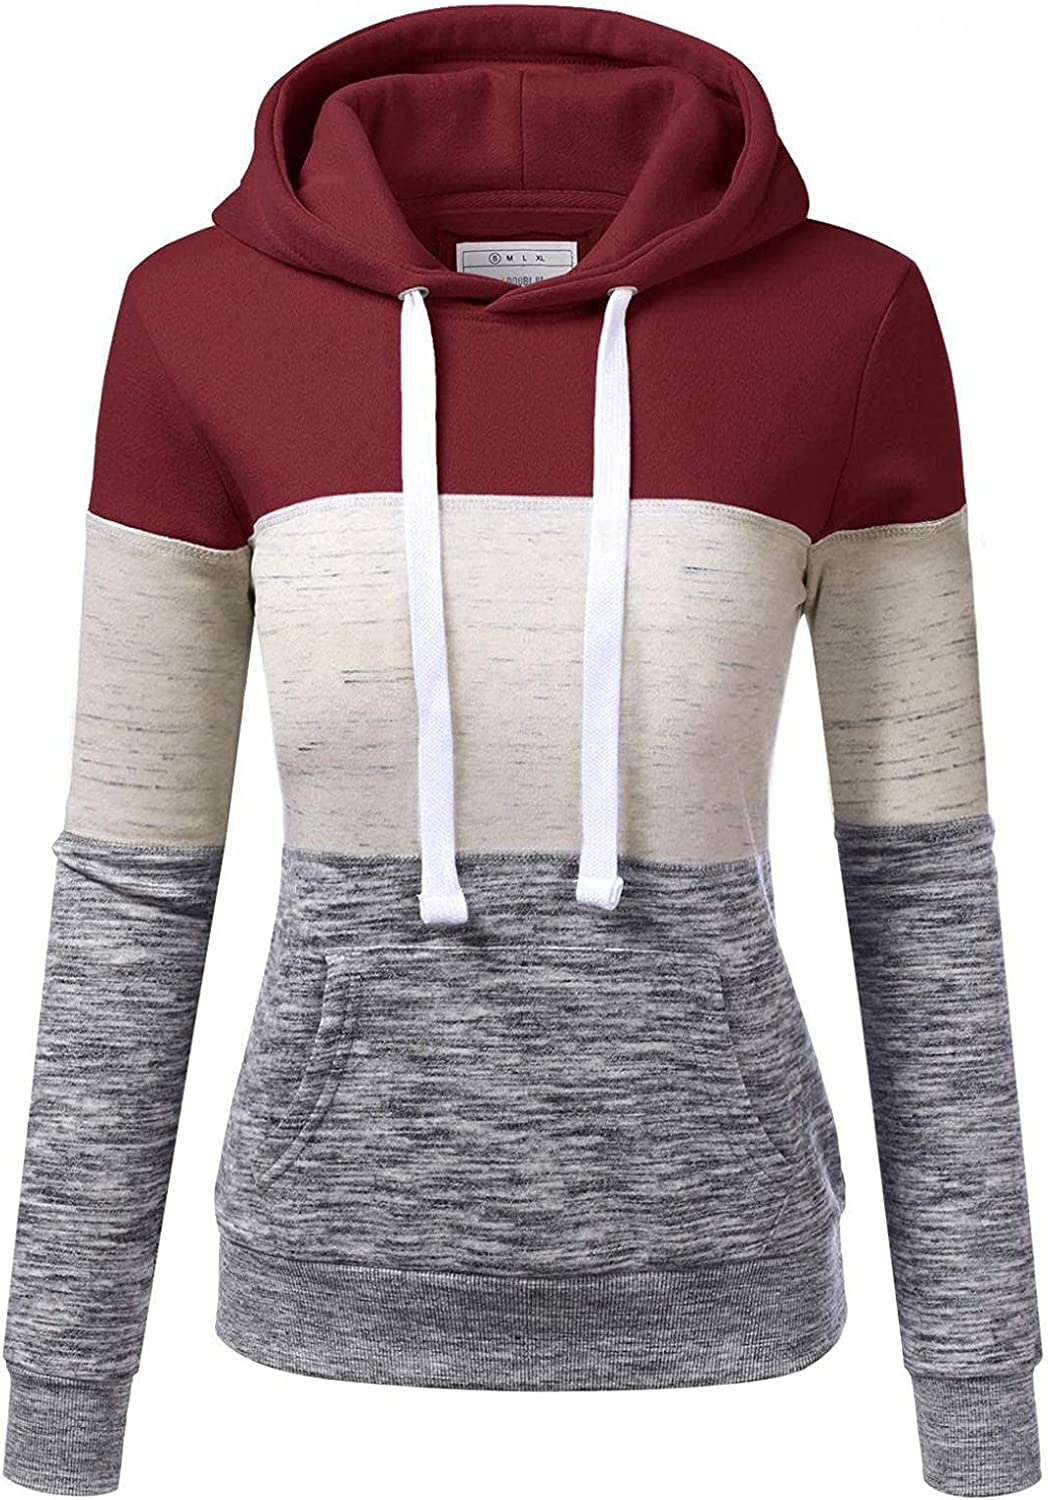 ORT Hoodies for Womens Striped Printed Sweatshirts Casual Long Sleeve Pullover Shirts Loose Lightweight Tops